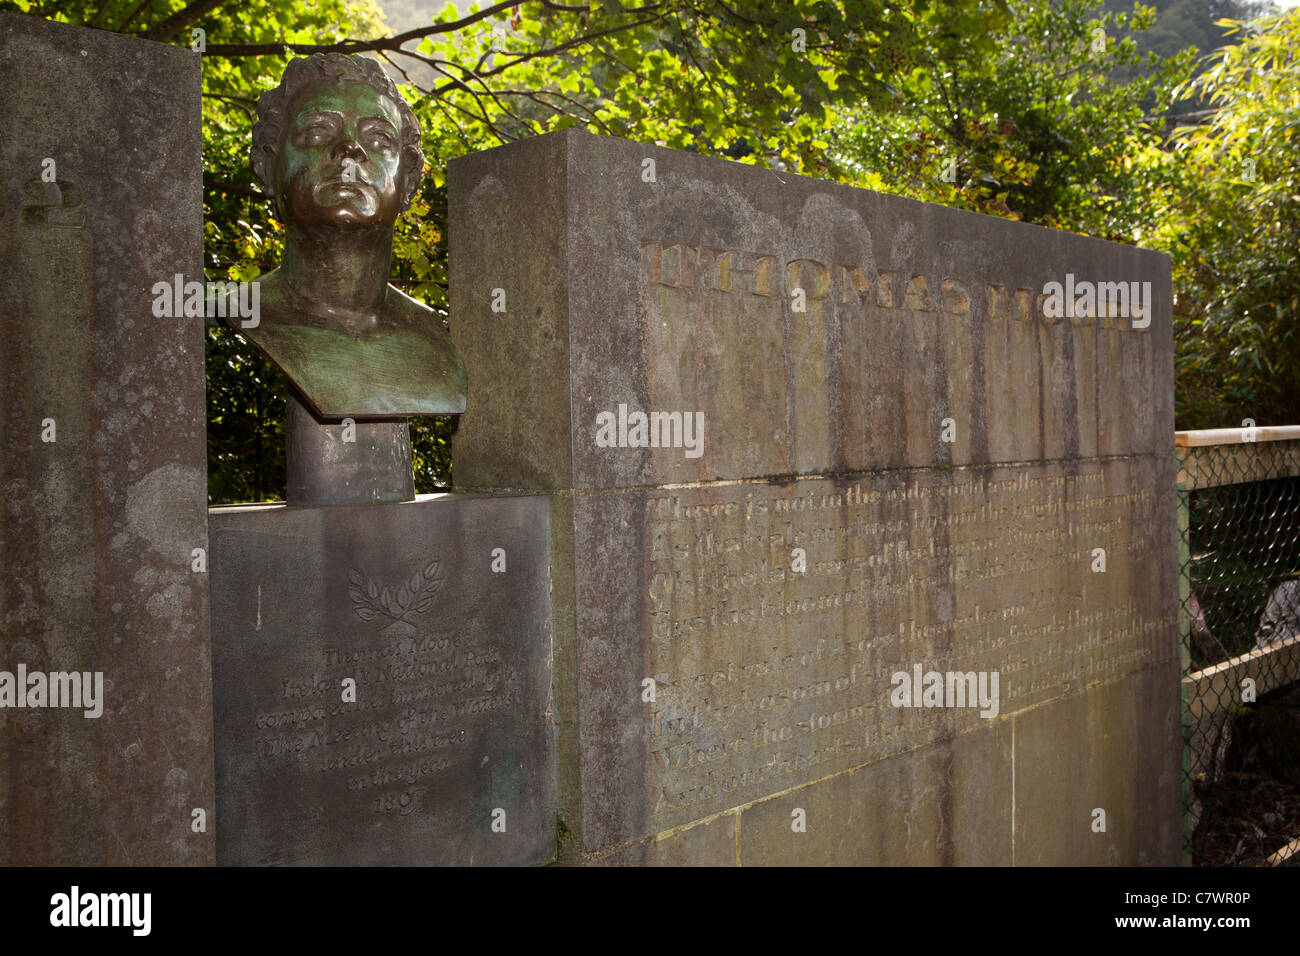 Ireland, Co Wicklow, Avoca, poet Thomas Moore memorial at the meeting of the waters - Stock Image